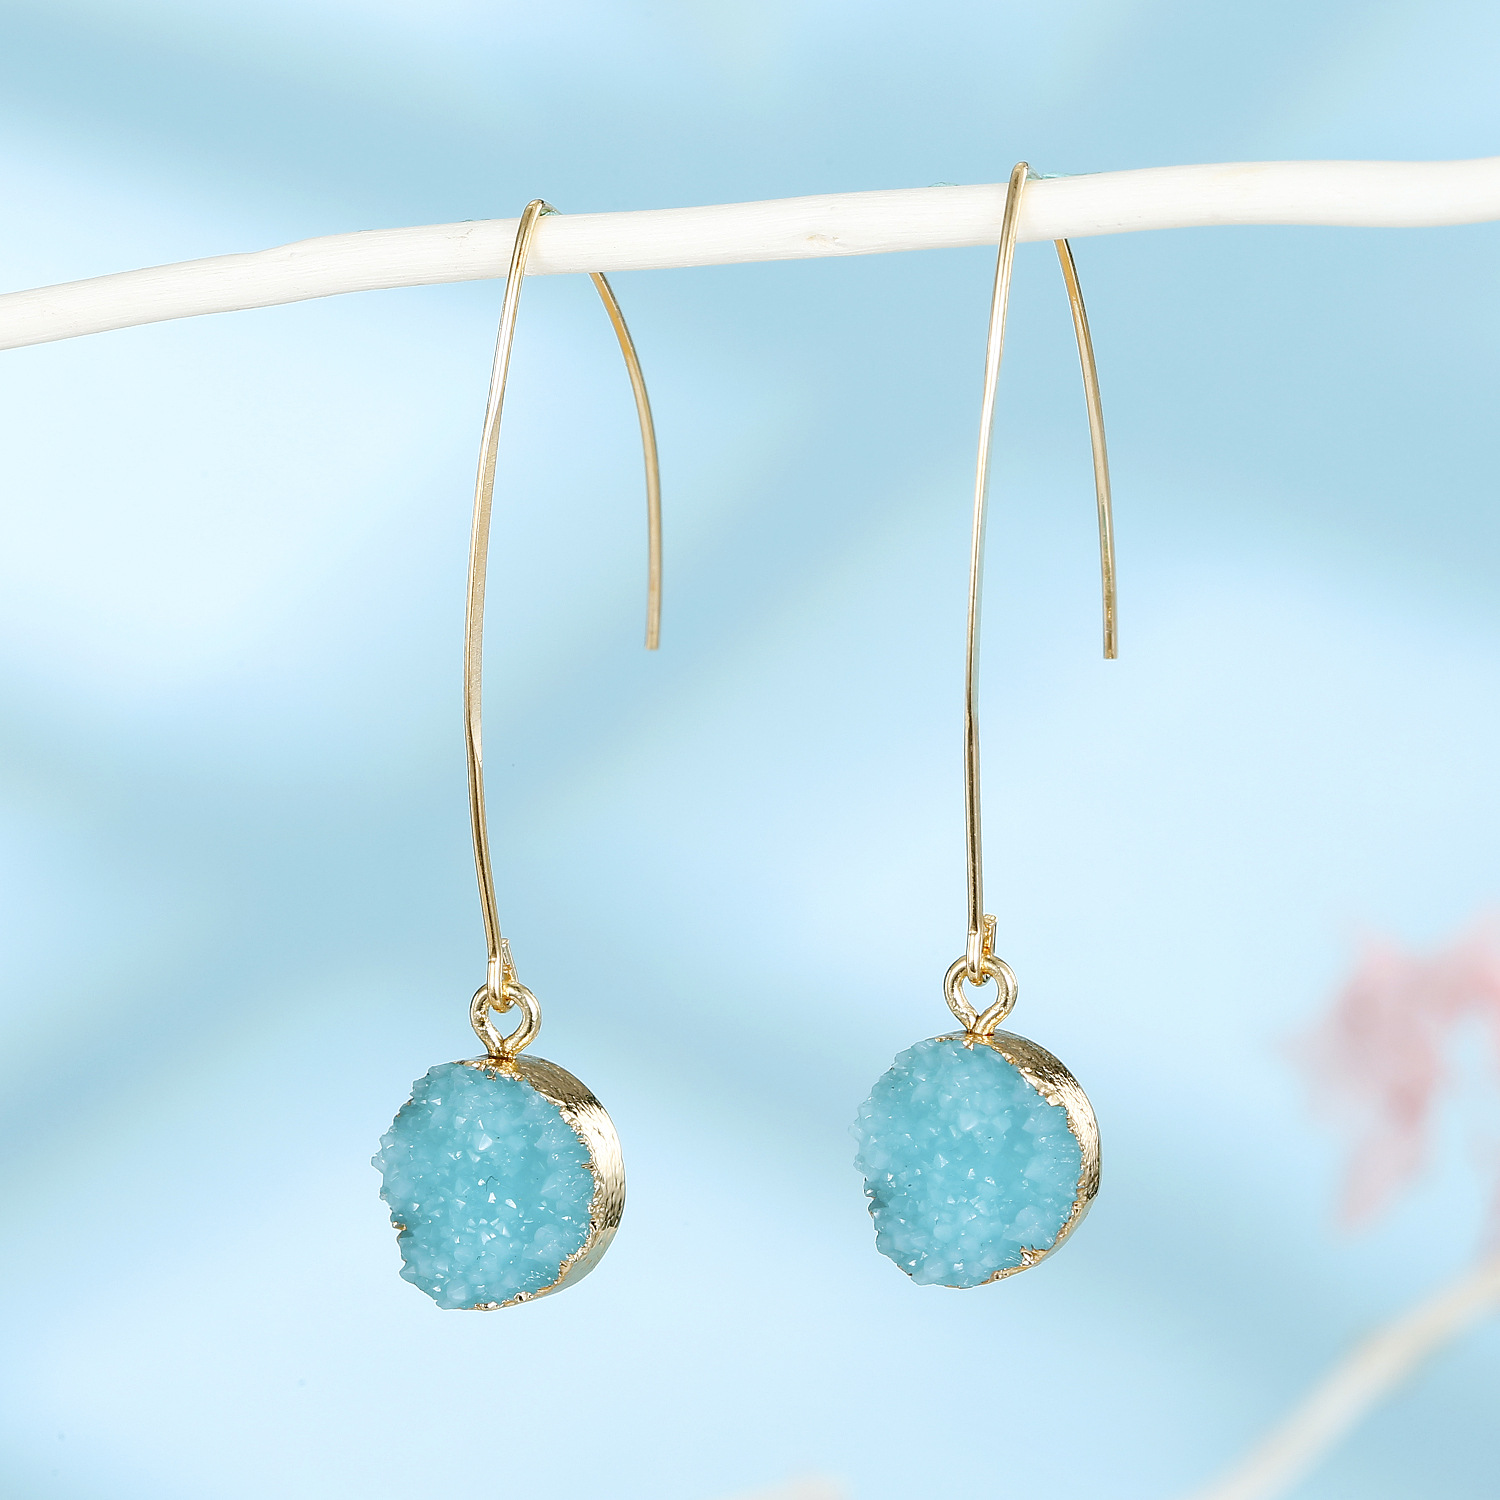 Jewelry simple earrings imitation natural stone earrings round small crystal bud resin earrings NHGO201045